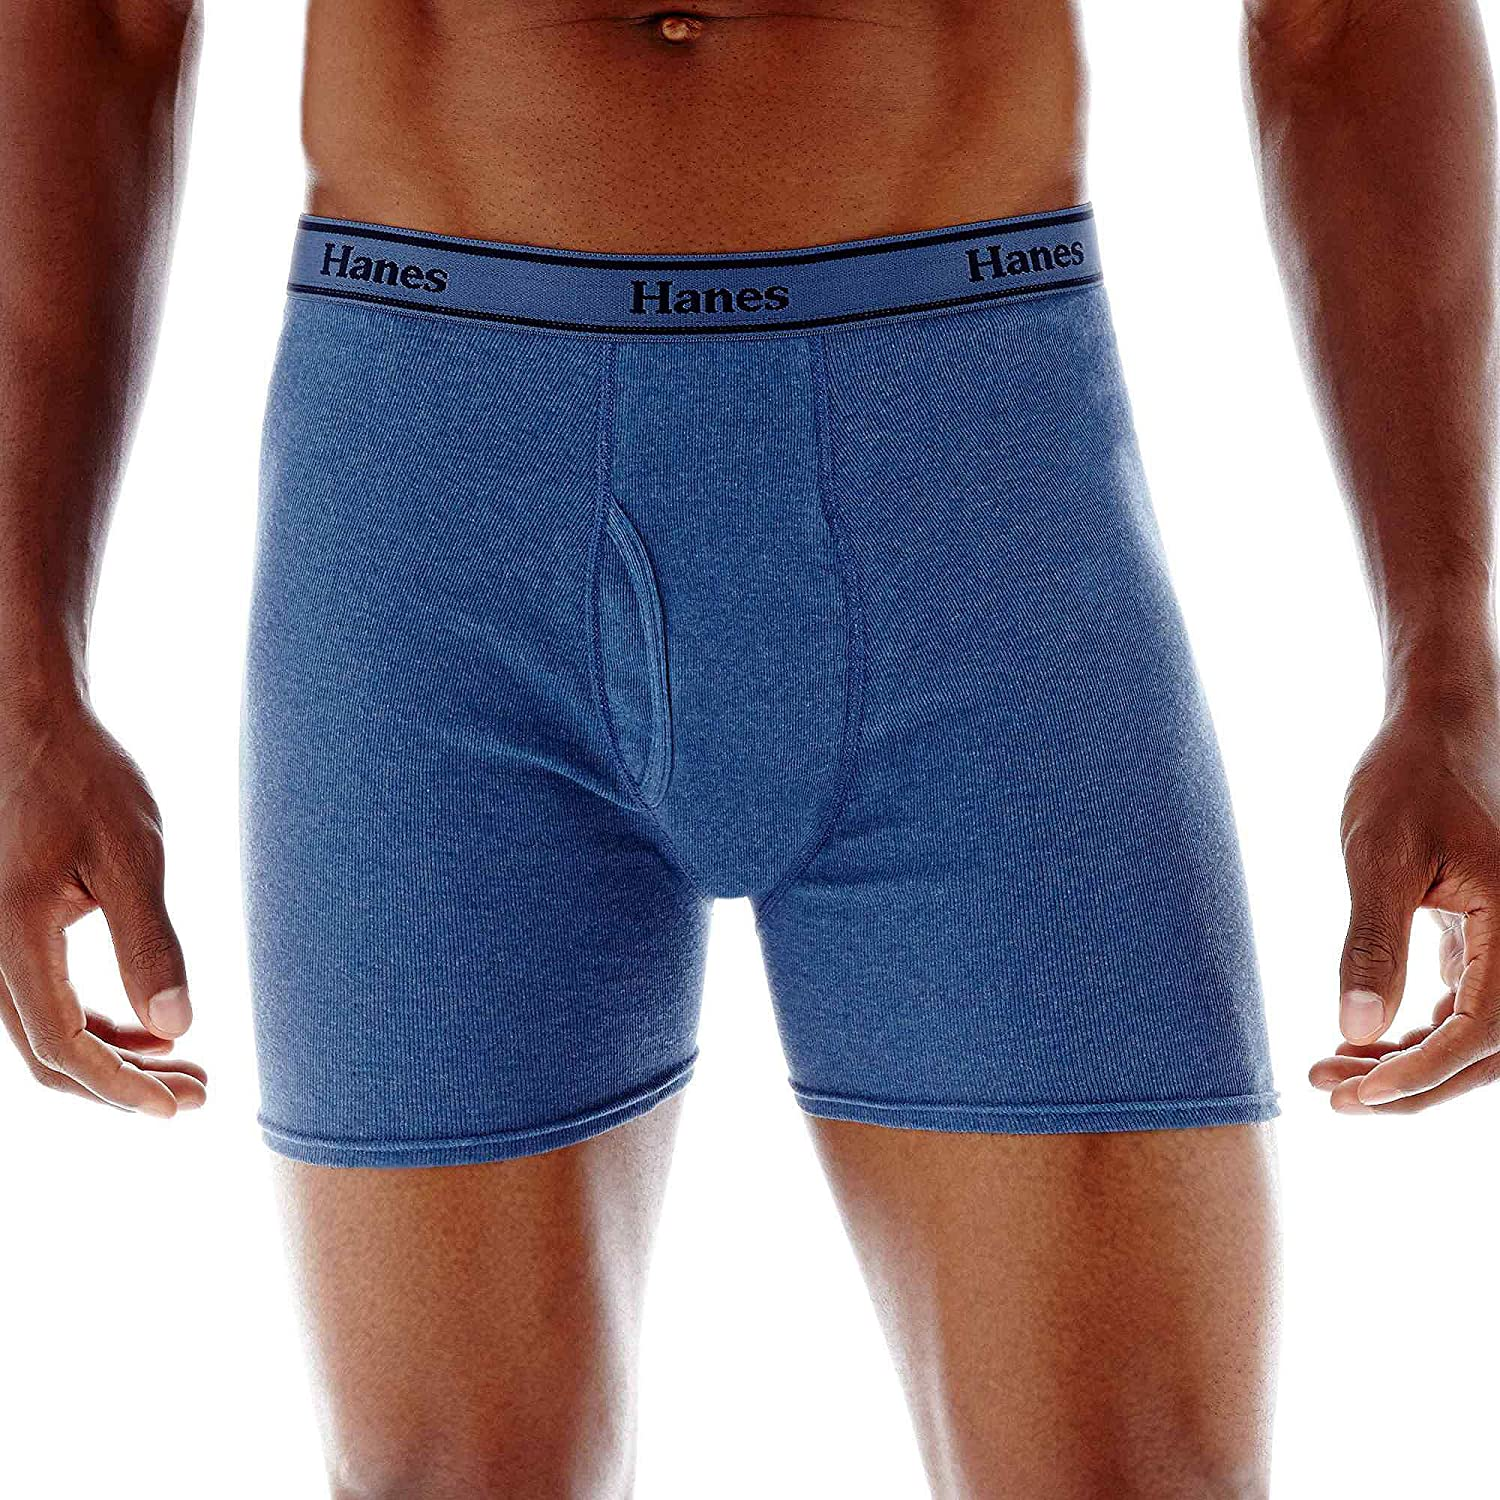 Hanes Ultimate Men's 4-Pack FreshIQ Tagless Cotton Boxer with ComfortFlex Waistband Briefs, Assorted Blues, Large